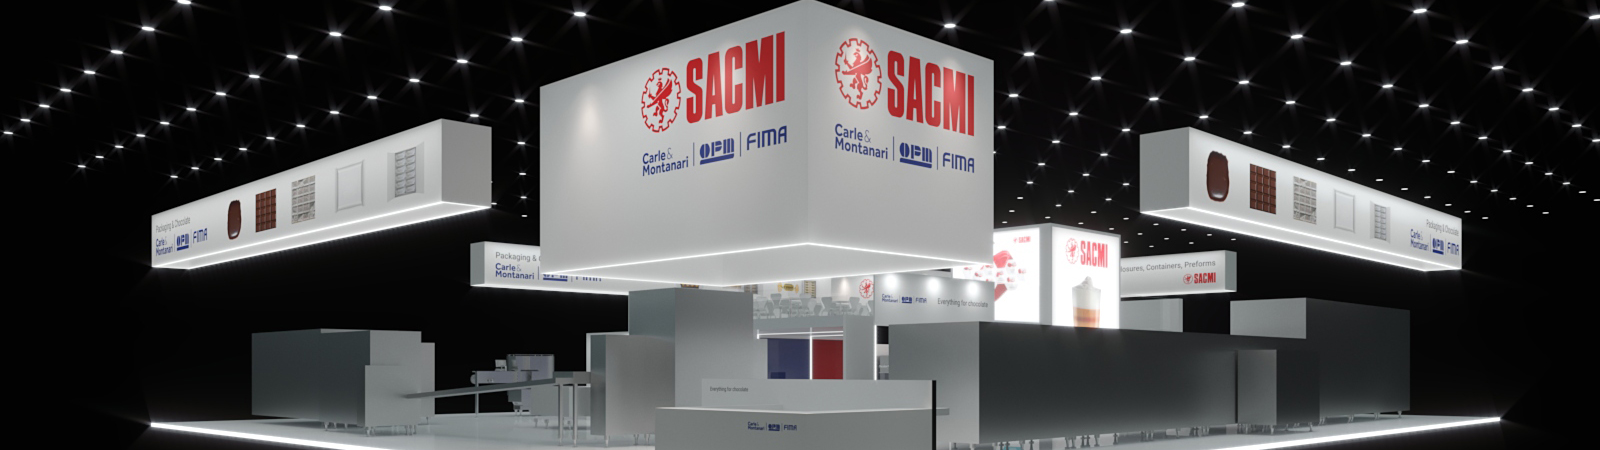 SACMI Packaging&Chocolate to hold a 'virtual trade fair'